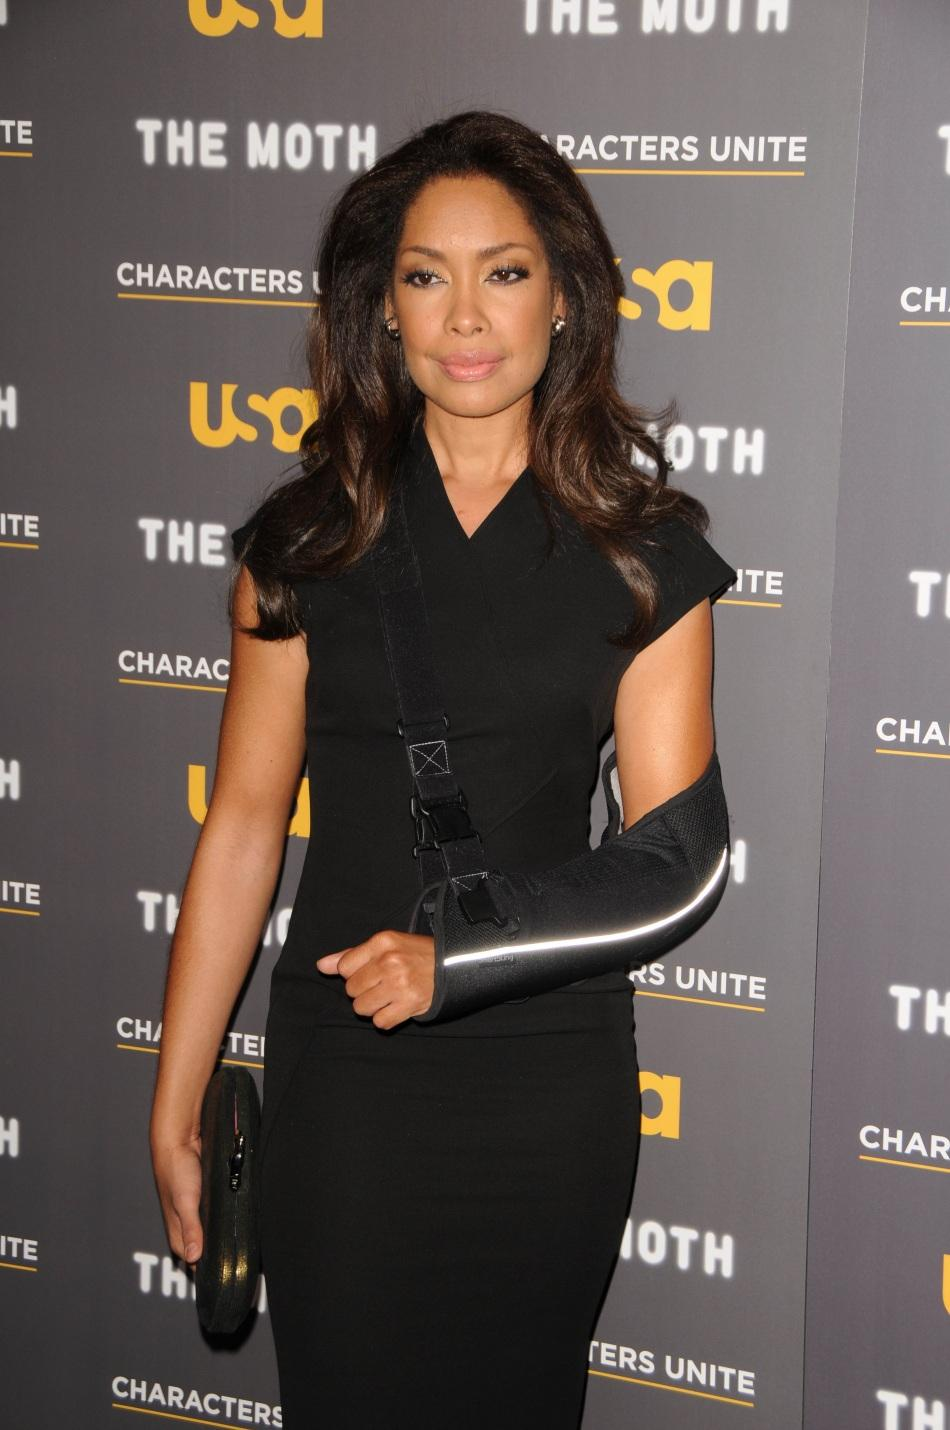 gina torres photo 22 of 29 pics wallpaper   photo 696595   theplace2